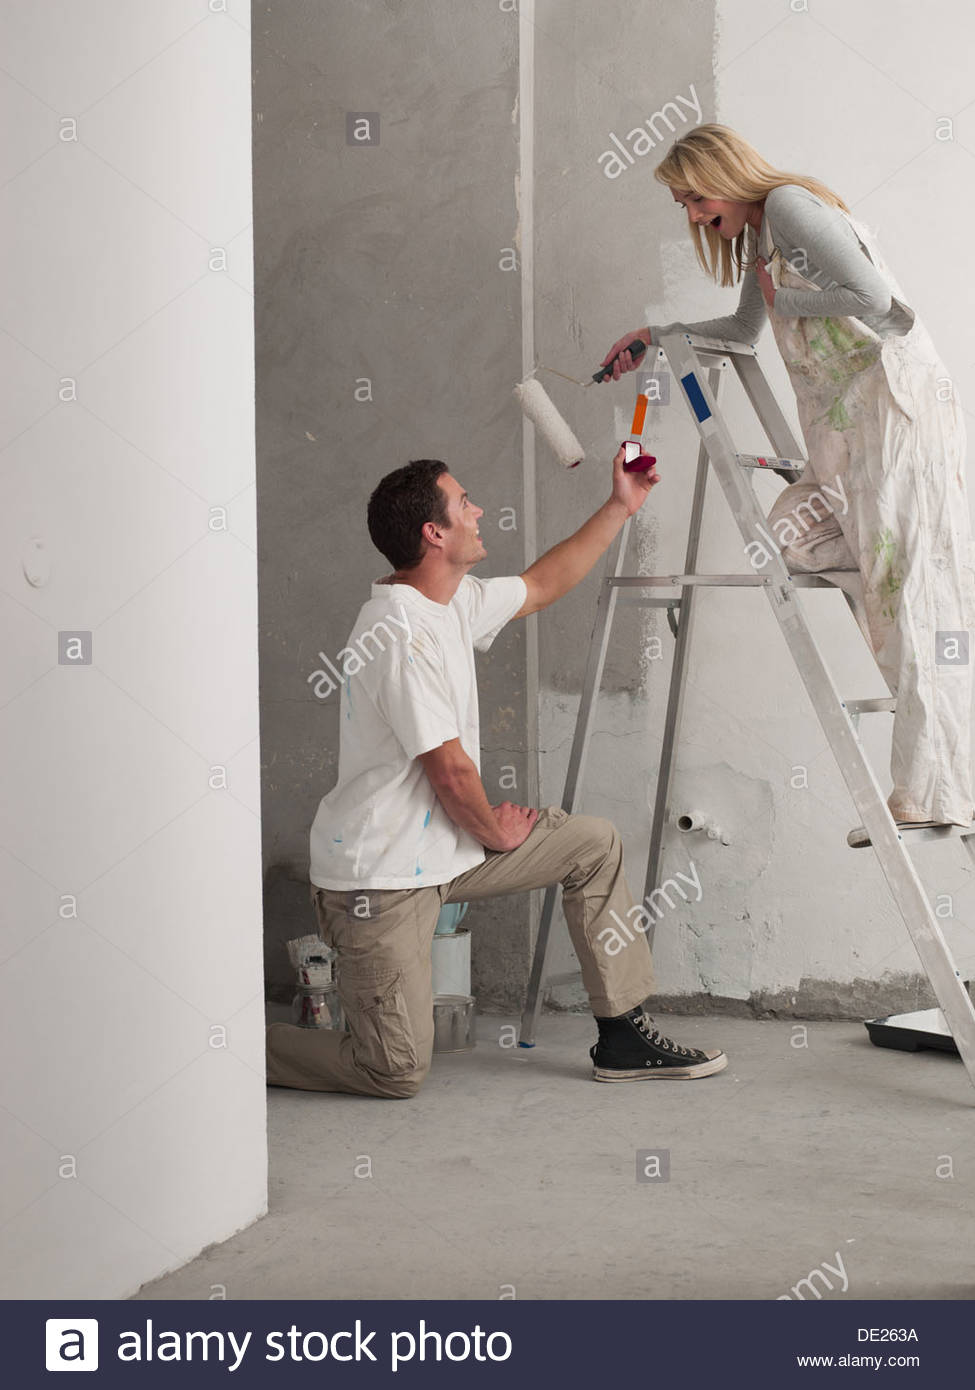 Man proposing to woman painting wall - Stock Image